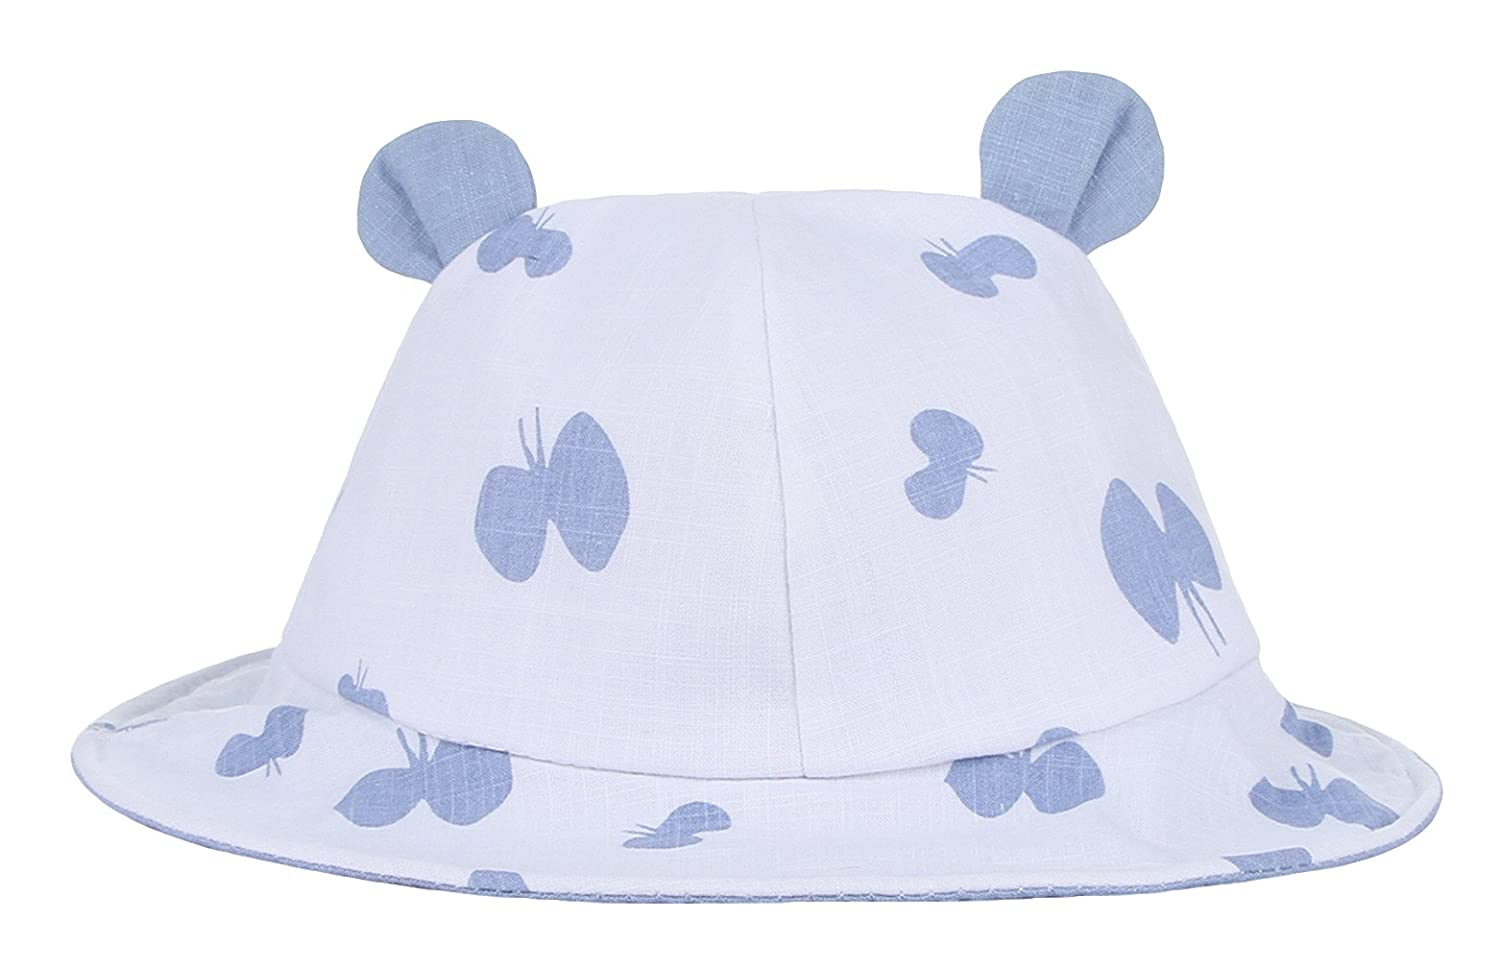 Gemvie Baby Hat Newborn Infants Cotton Bucket Cap Ear Sun Protection Hat